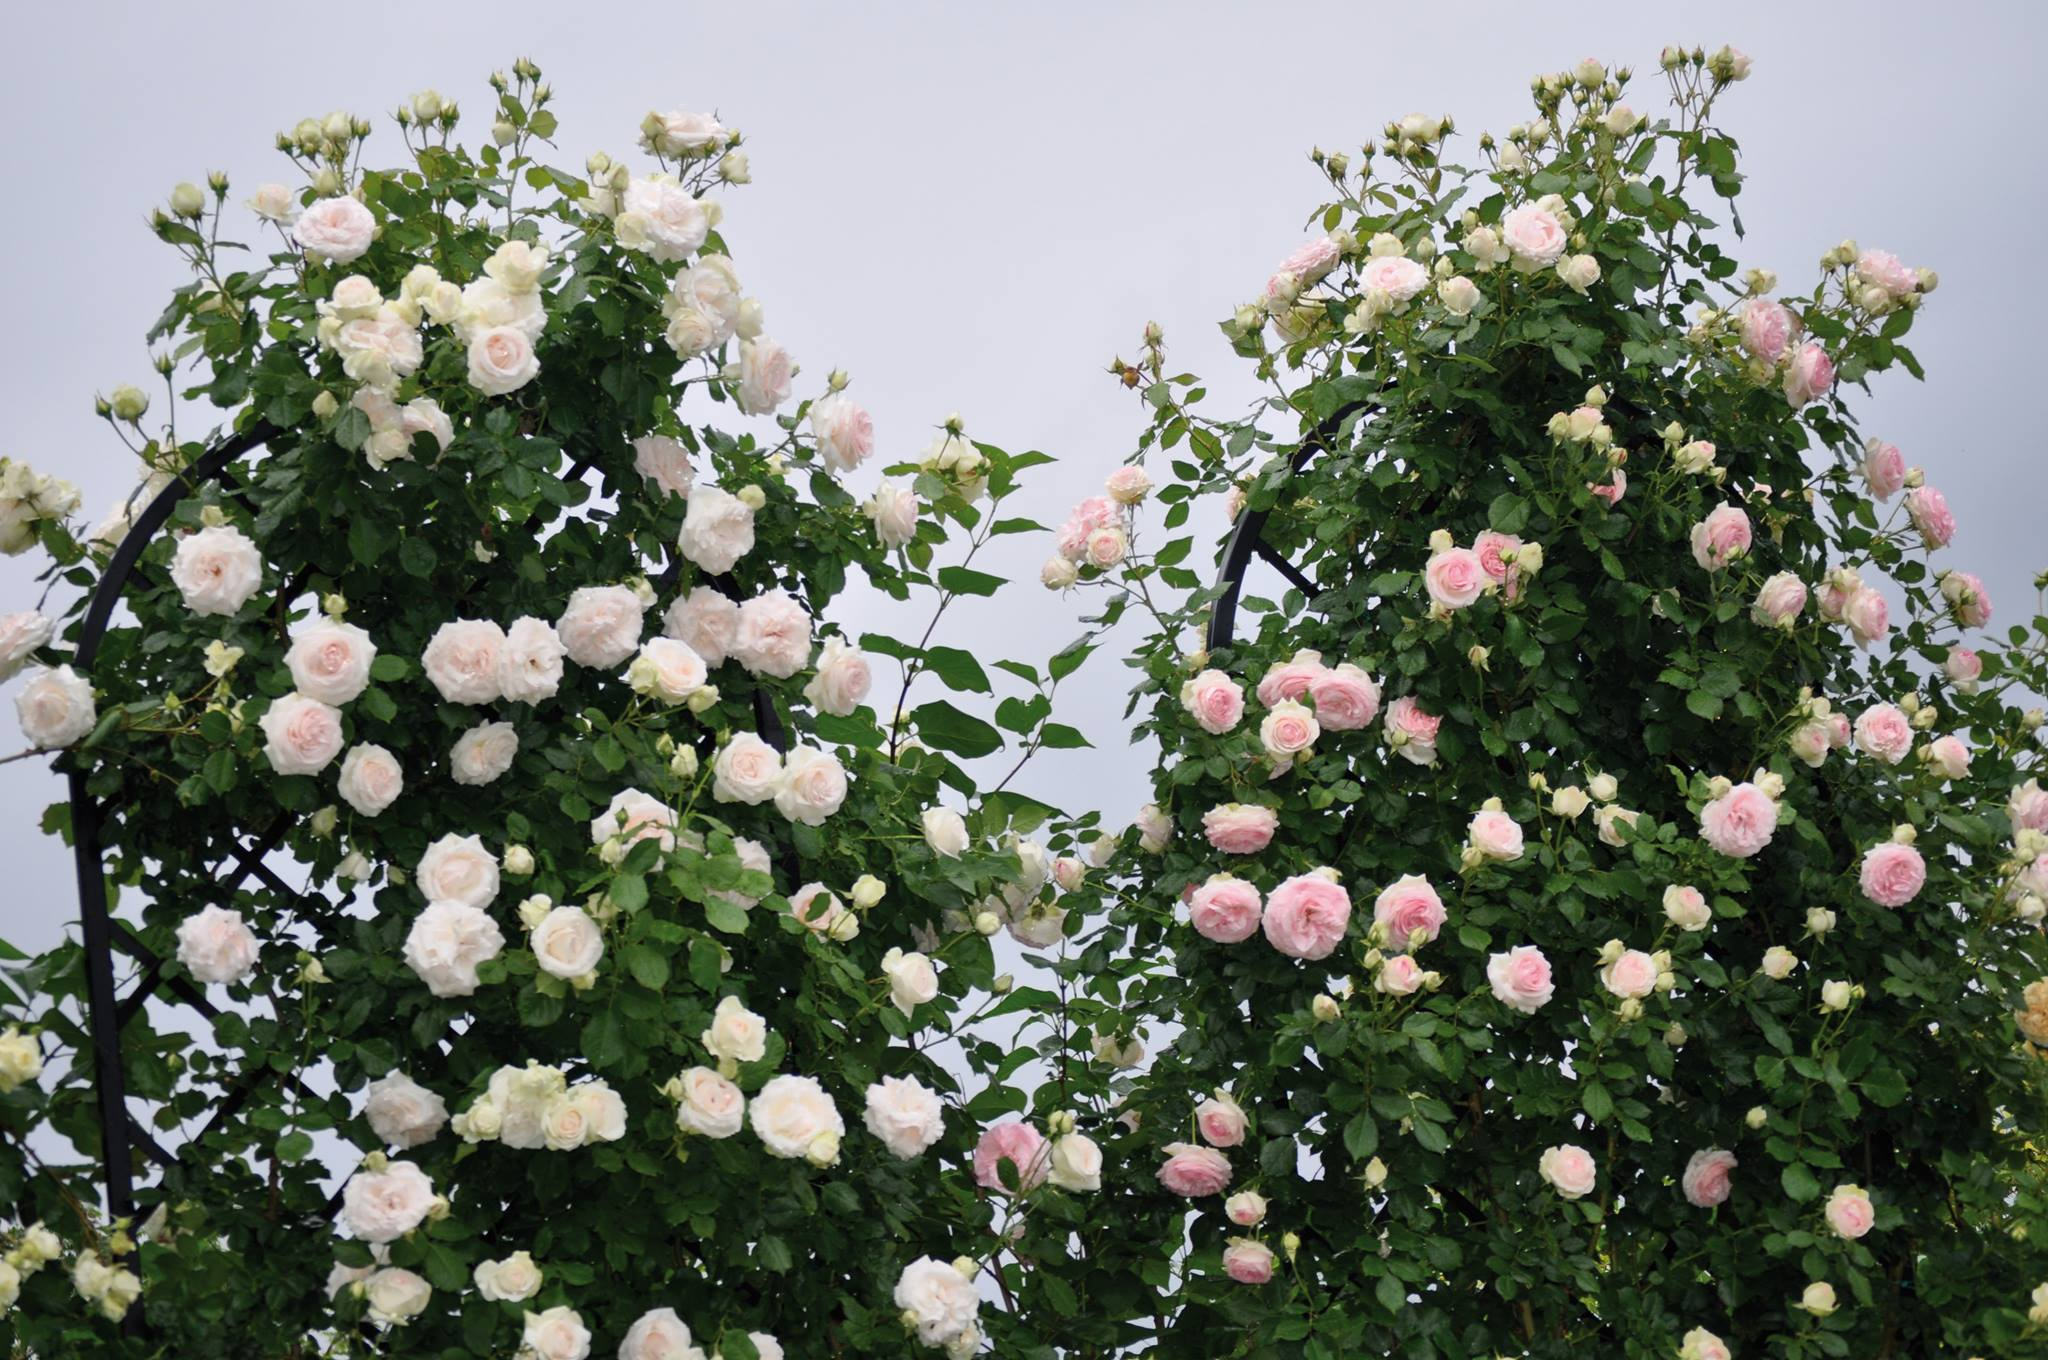 Merveilleux Two Classic Garden Elements Made To Measure U0027Beekmanu0027 Free Standing  Trellises Completely Covered By Climbing Roses By Meiland: The Stunning  U0027Palais Royalu0027 ...